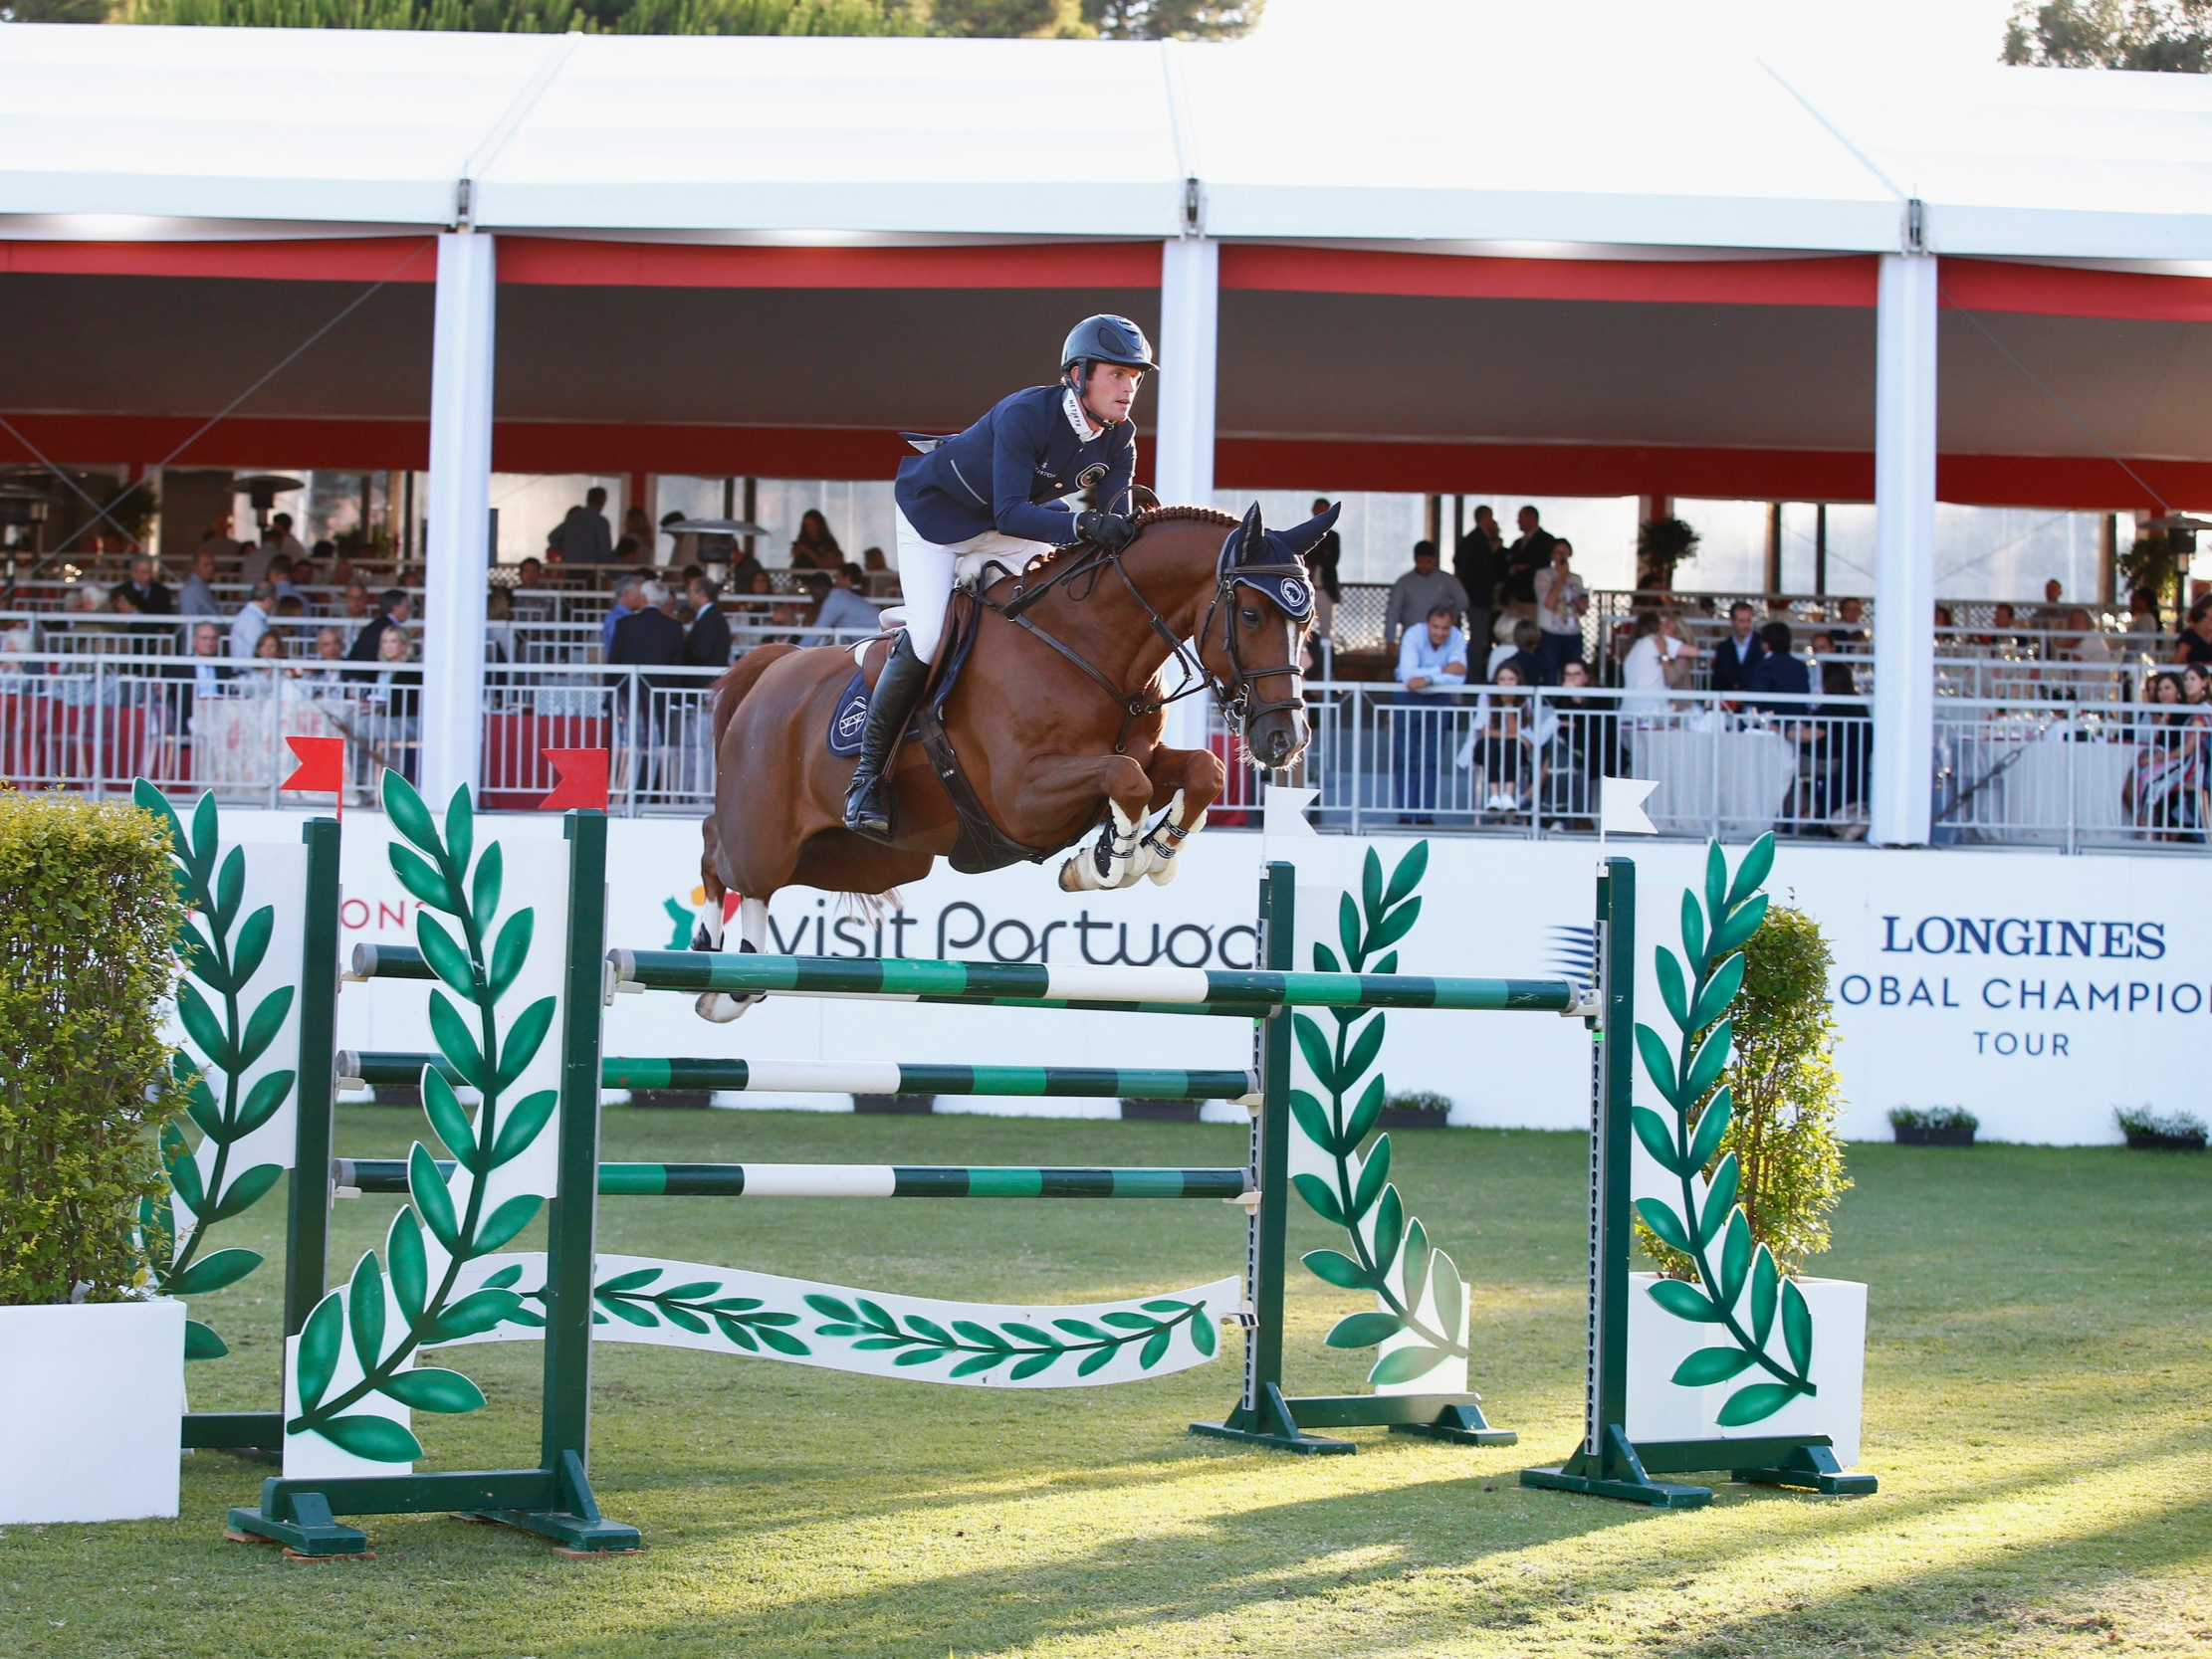 Darragh Kenny and Classic Dream at Global Champions League of Cascais 2019. Photo by Stefano Grasso.